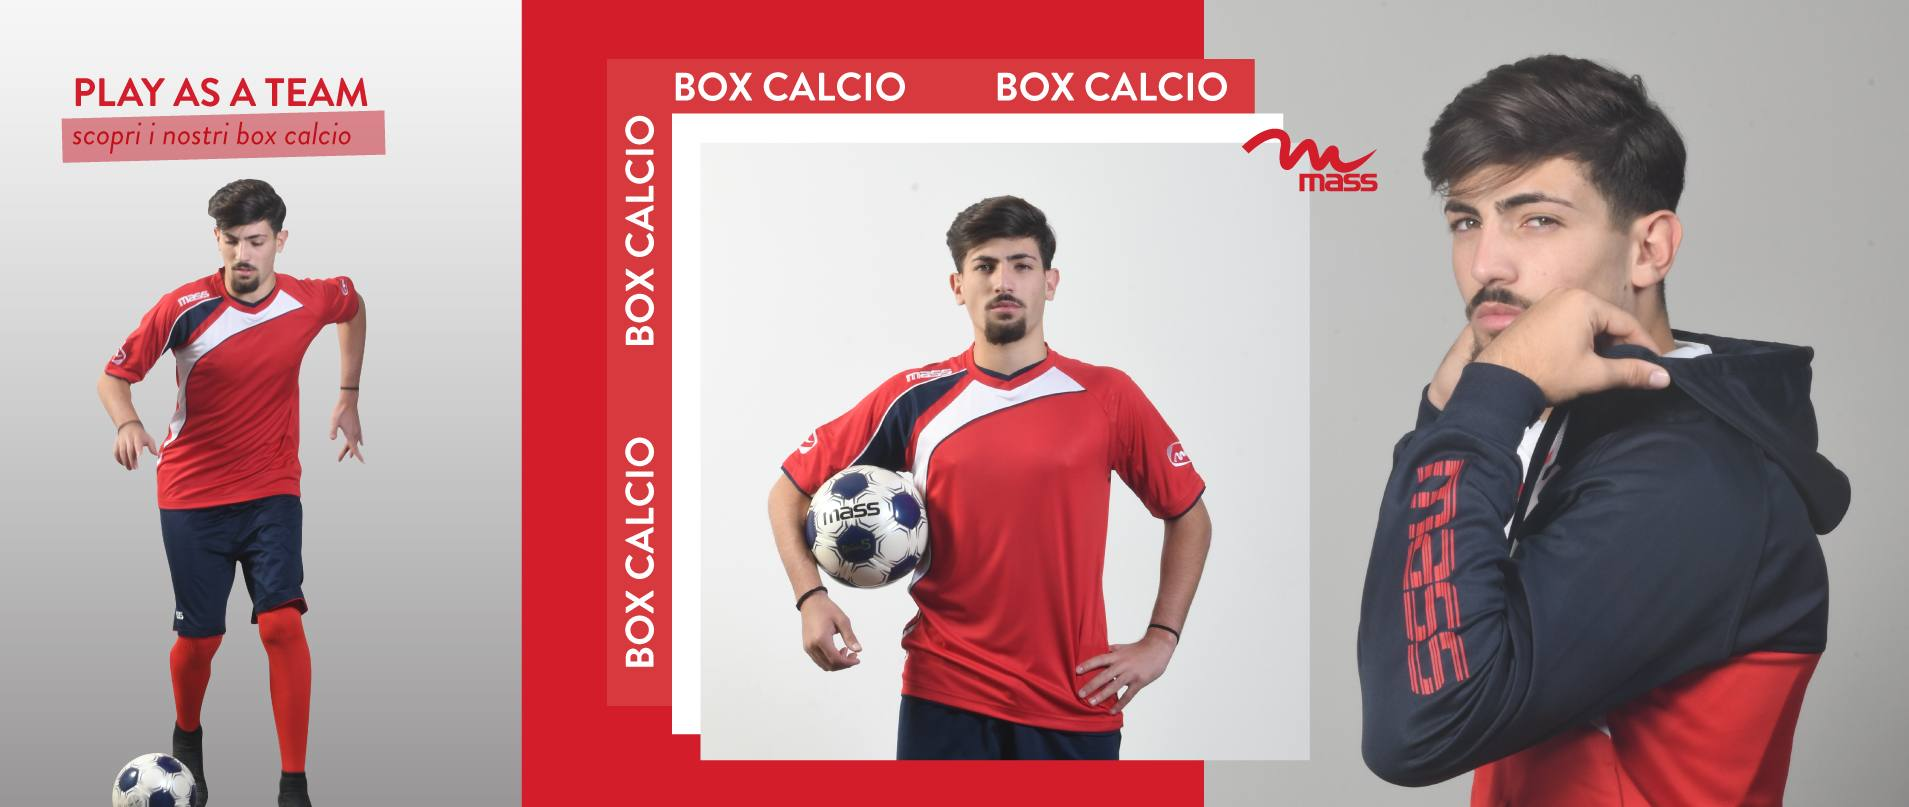 BOX CALCIO